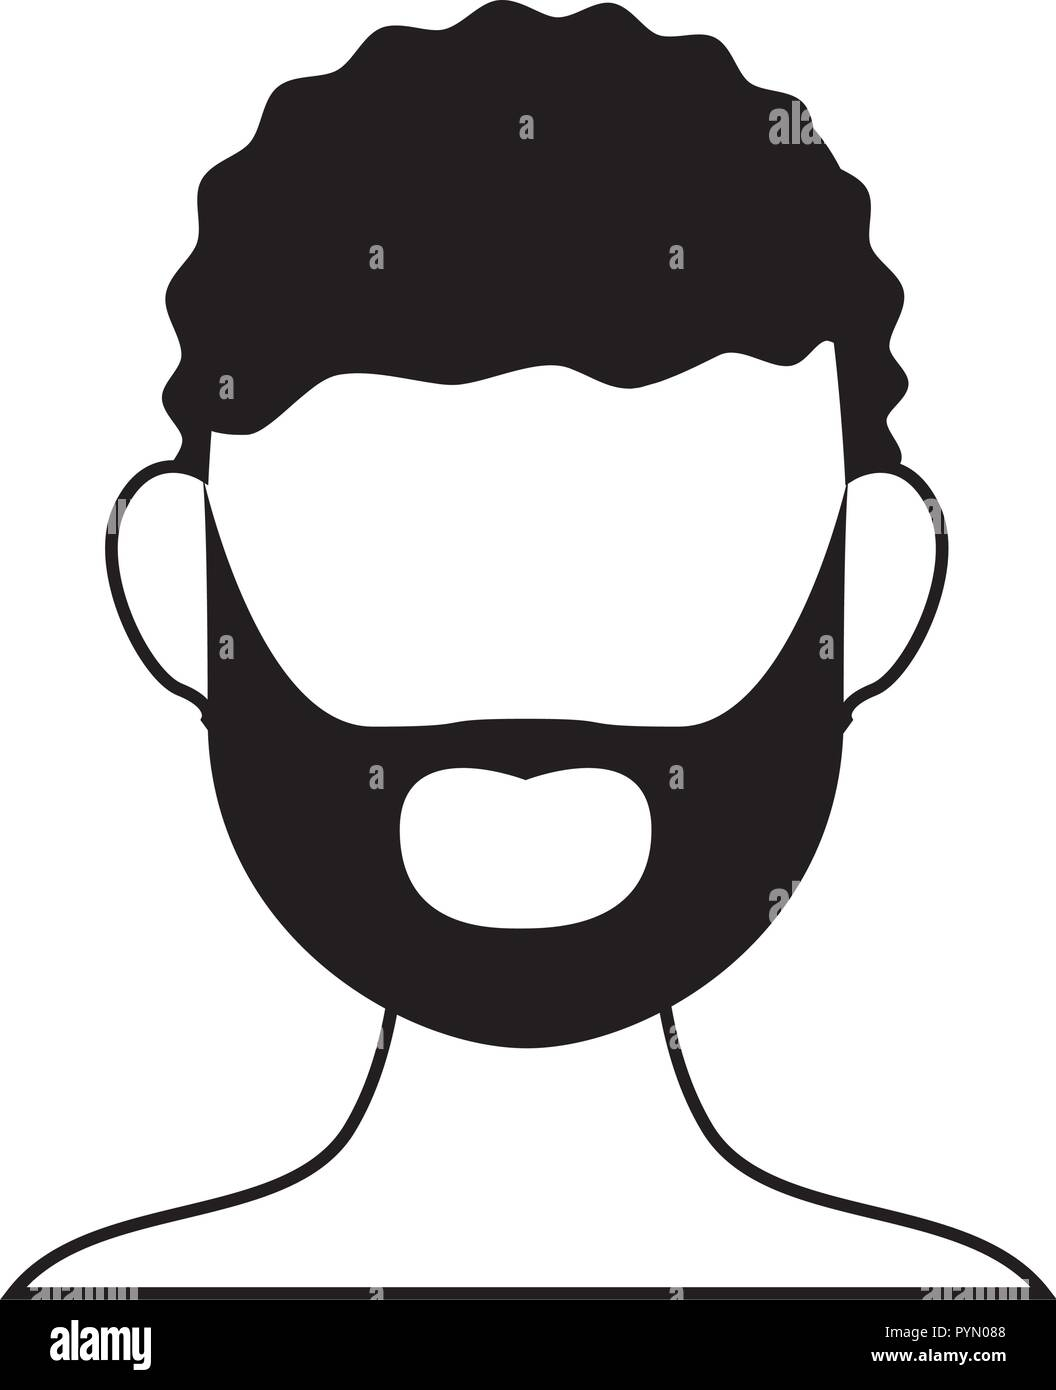 man with beard silhouette vector illustration design - Stock Vector